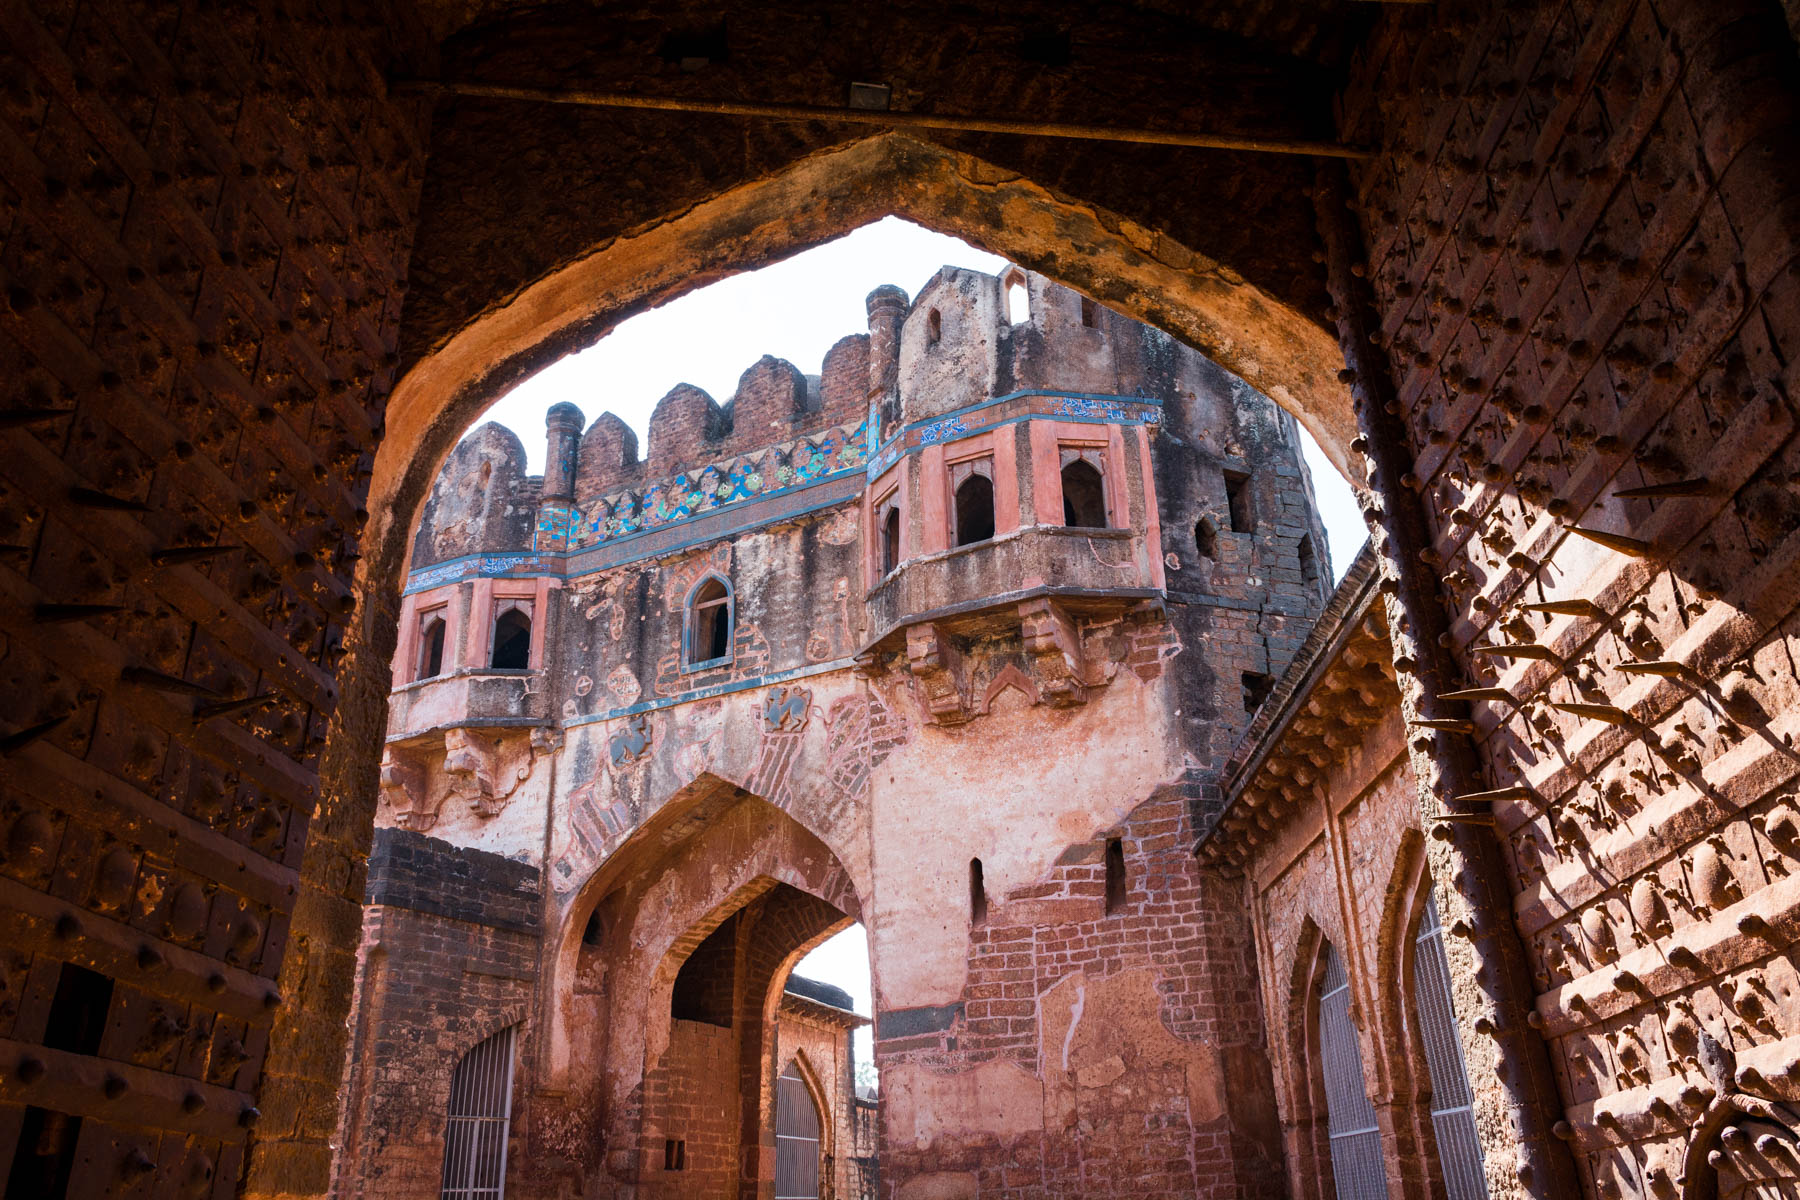 Off the beaten track places to visit in Karnataka, India - Bidar fort in Bidar, India - Lost With Purpose